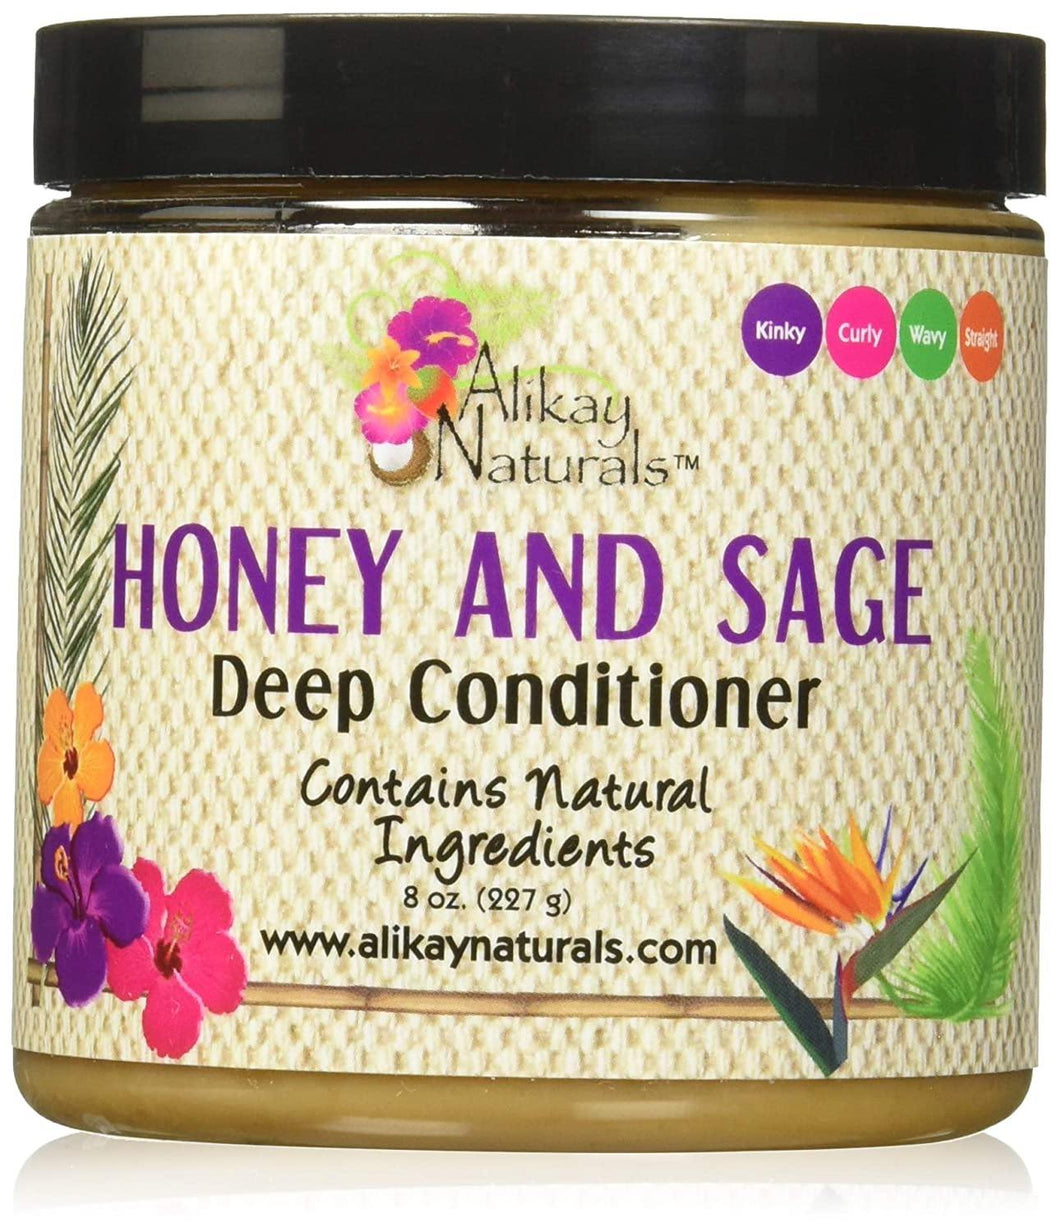 Alikay Naturals Honey and Sage Deep Conditioner - 8oz - Beauty & Organic Co.